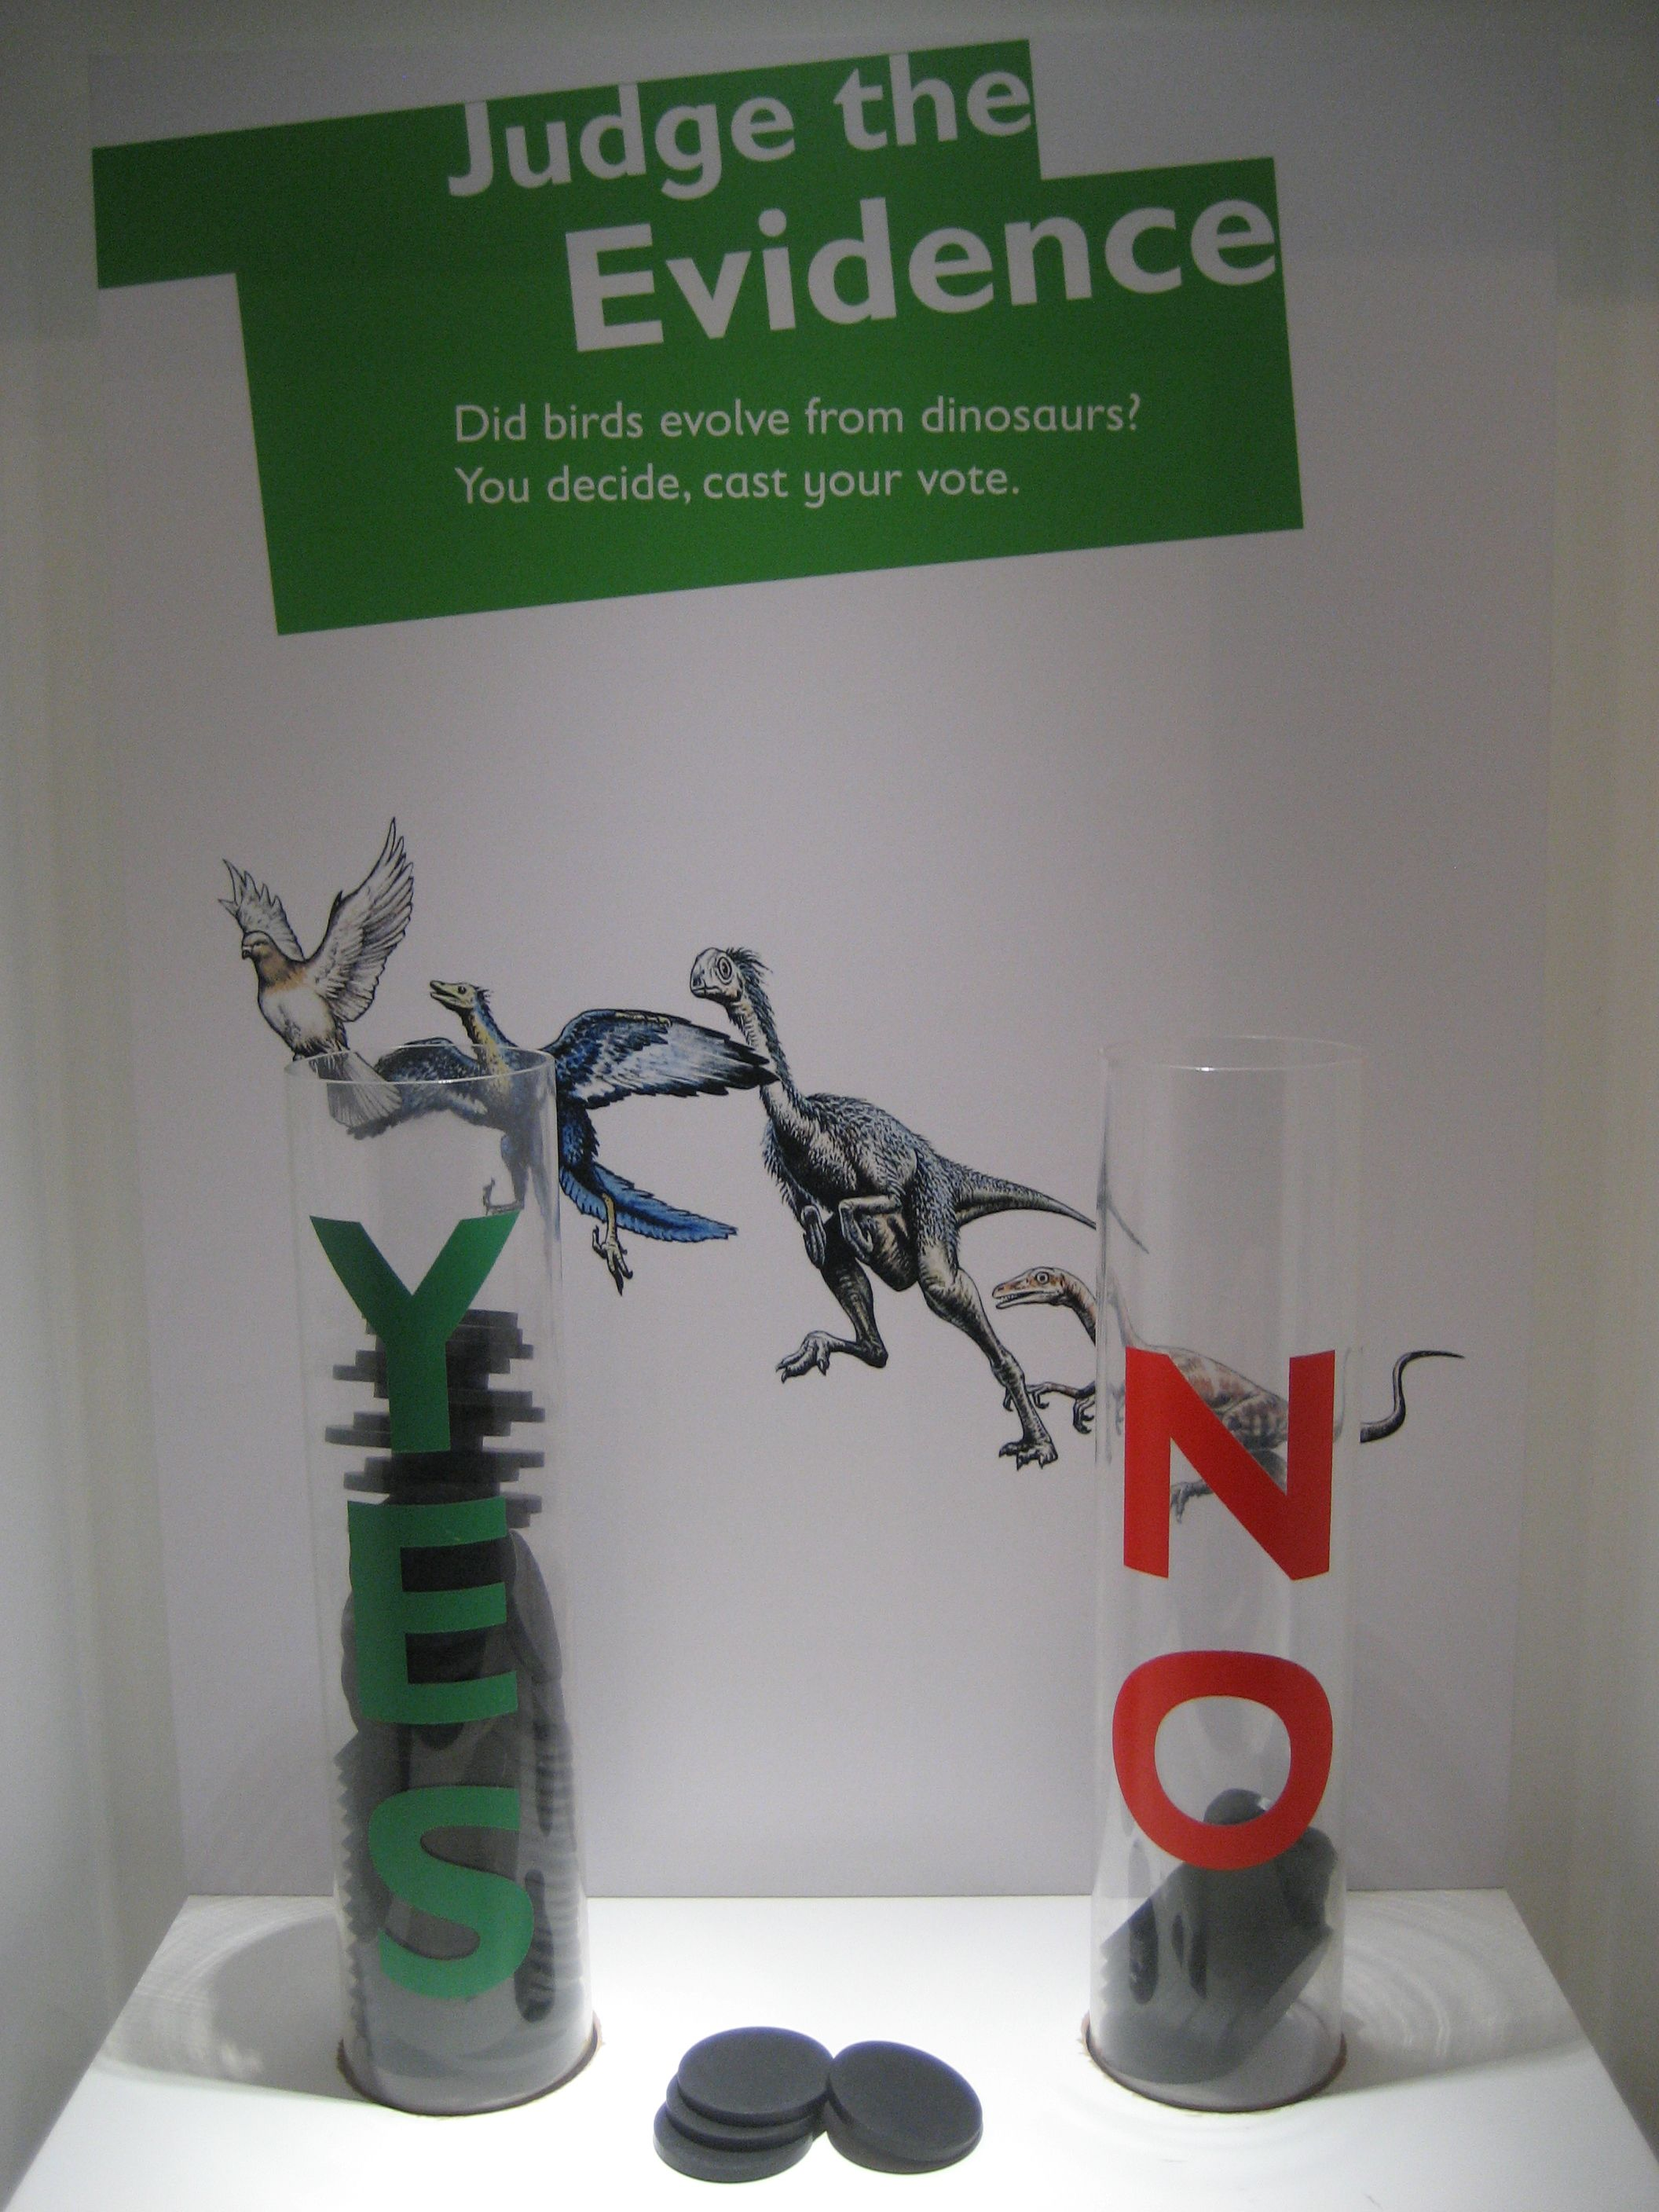 Did birds evolve from dinosaurs? Visitors vote at the end of the